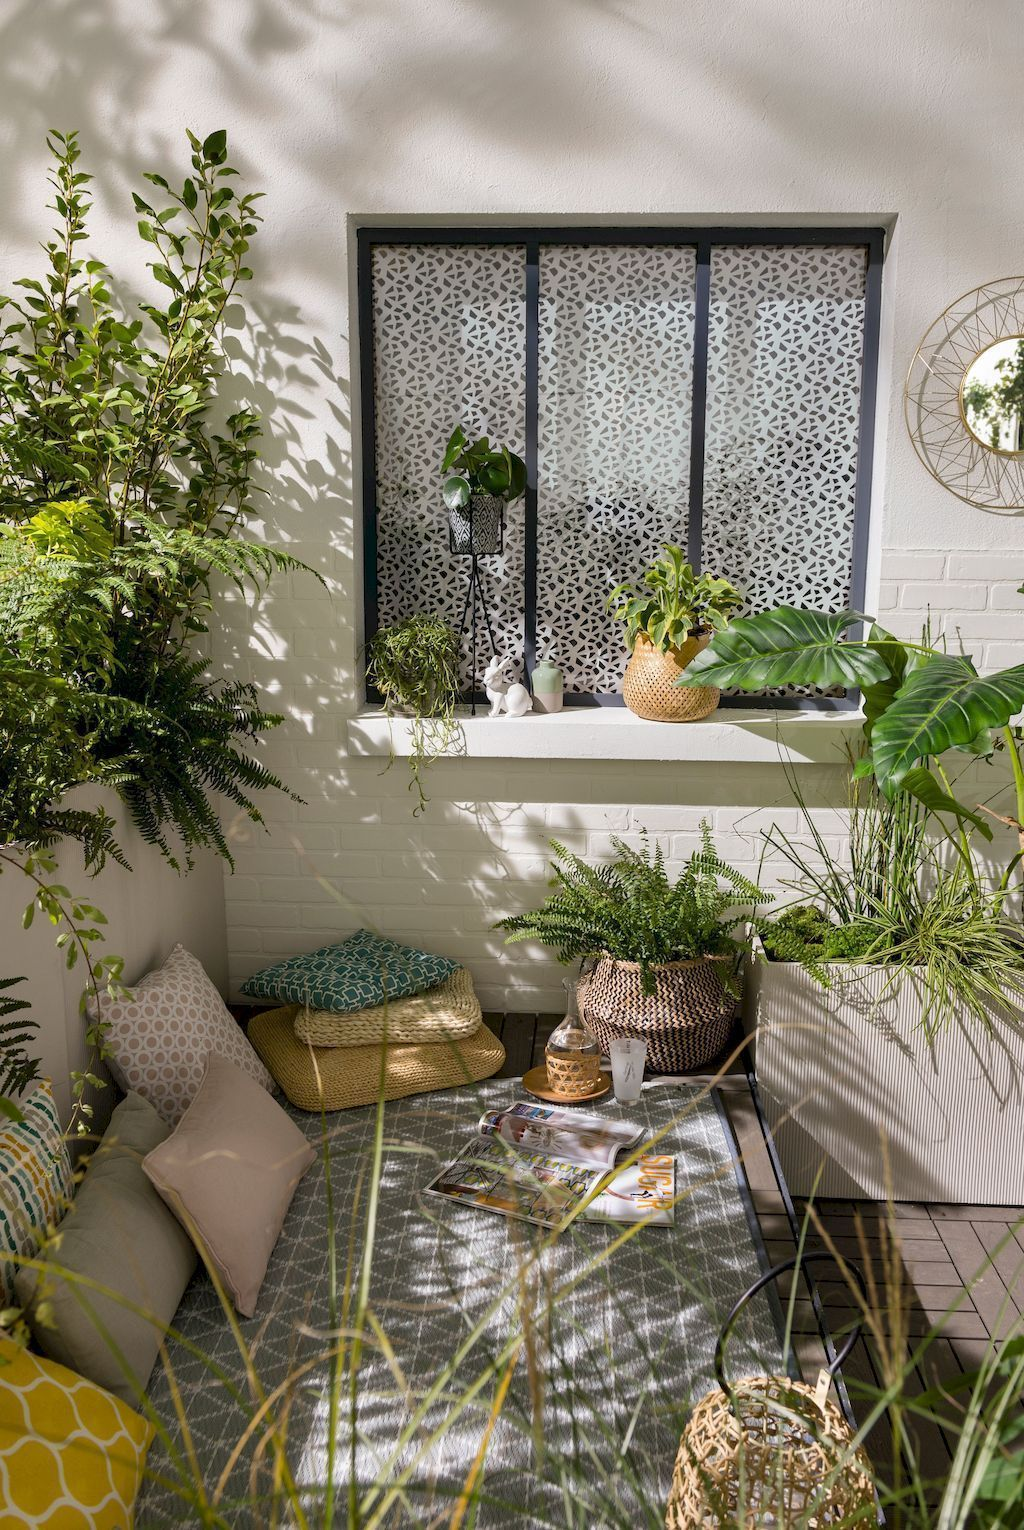 34 stunning apartment garden design ideas small balcony on classy backyard design ideas may be you never think id=21374